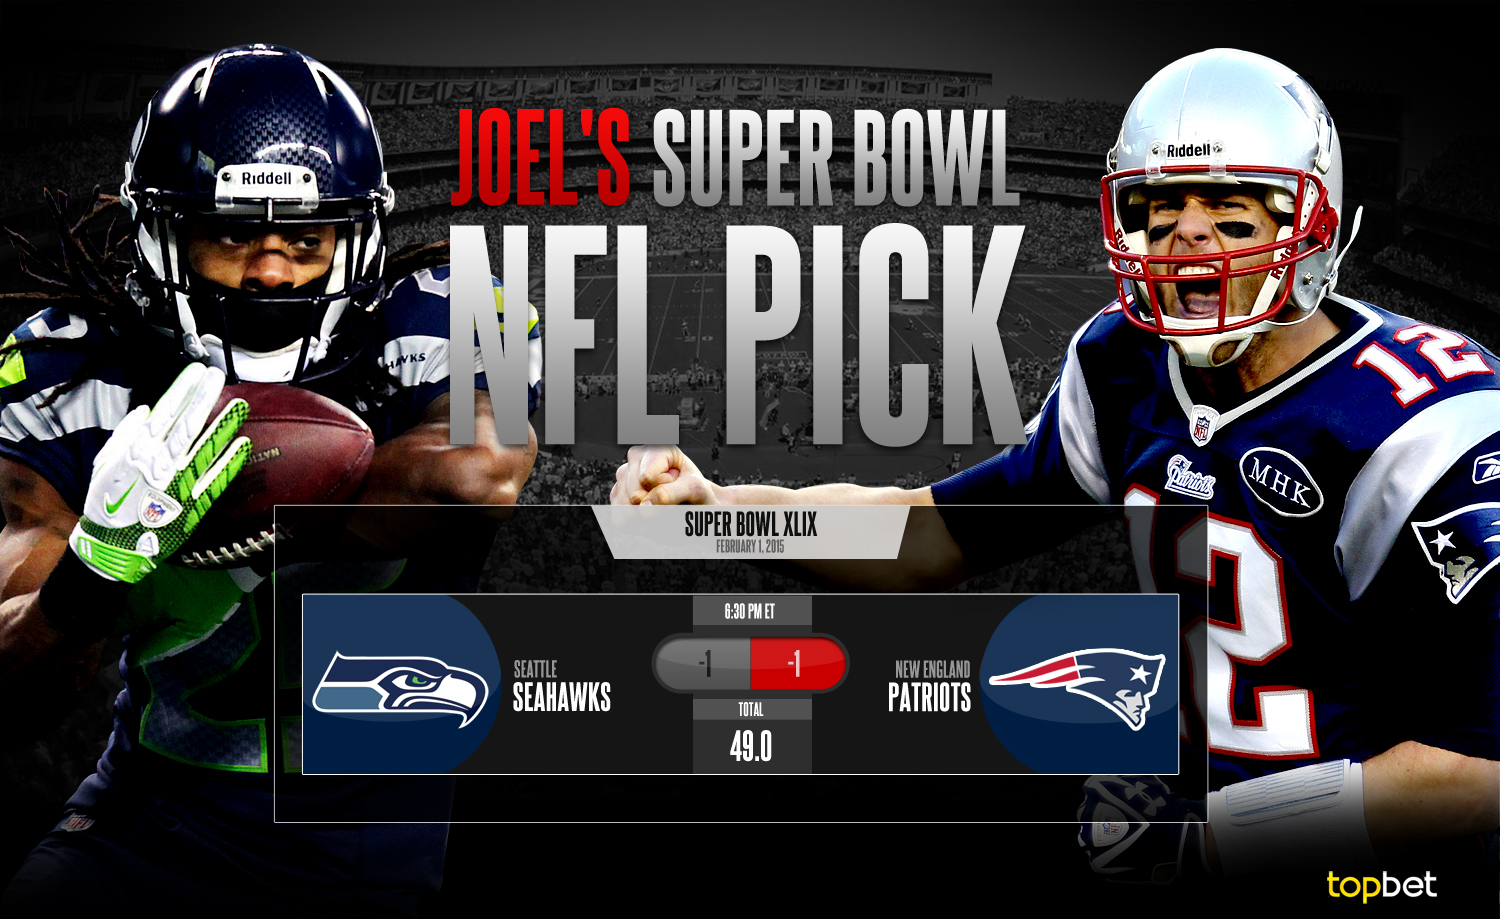 Seattle Seahawks vs New England Patriots 2015 Super Bowl ...